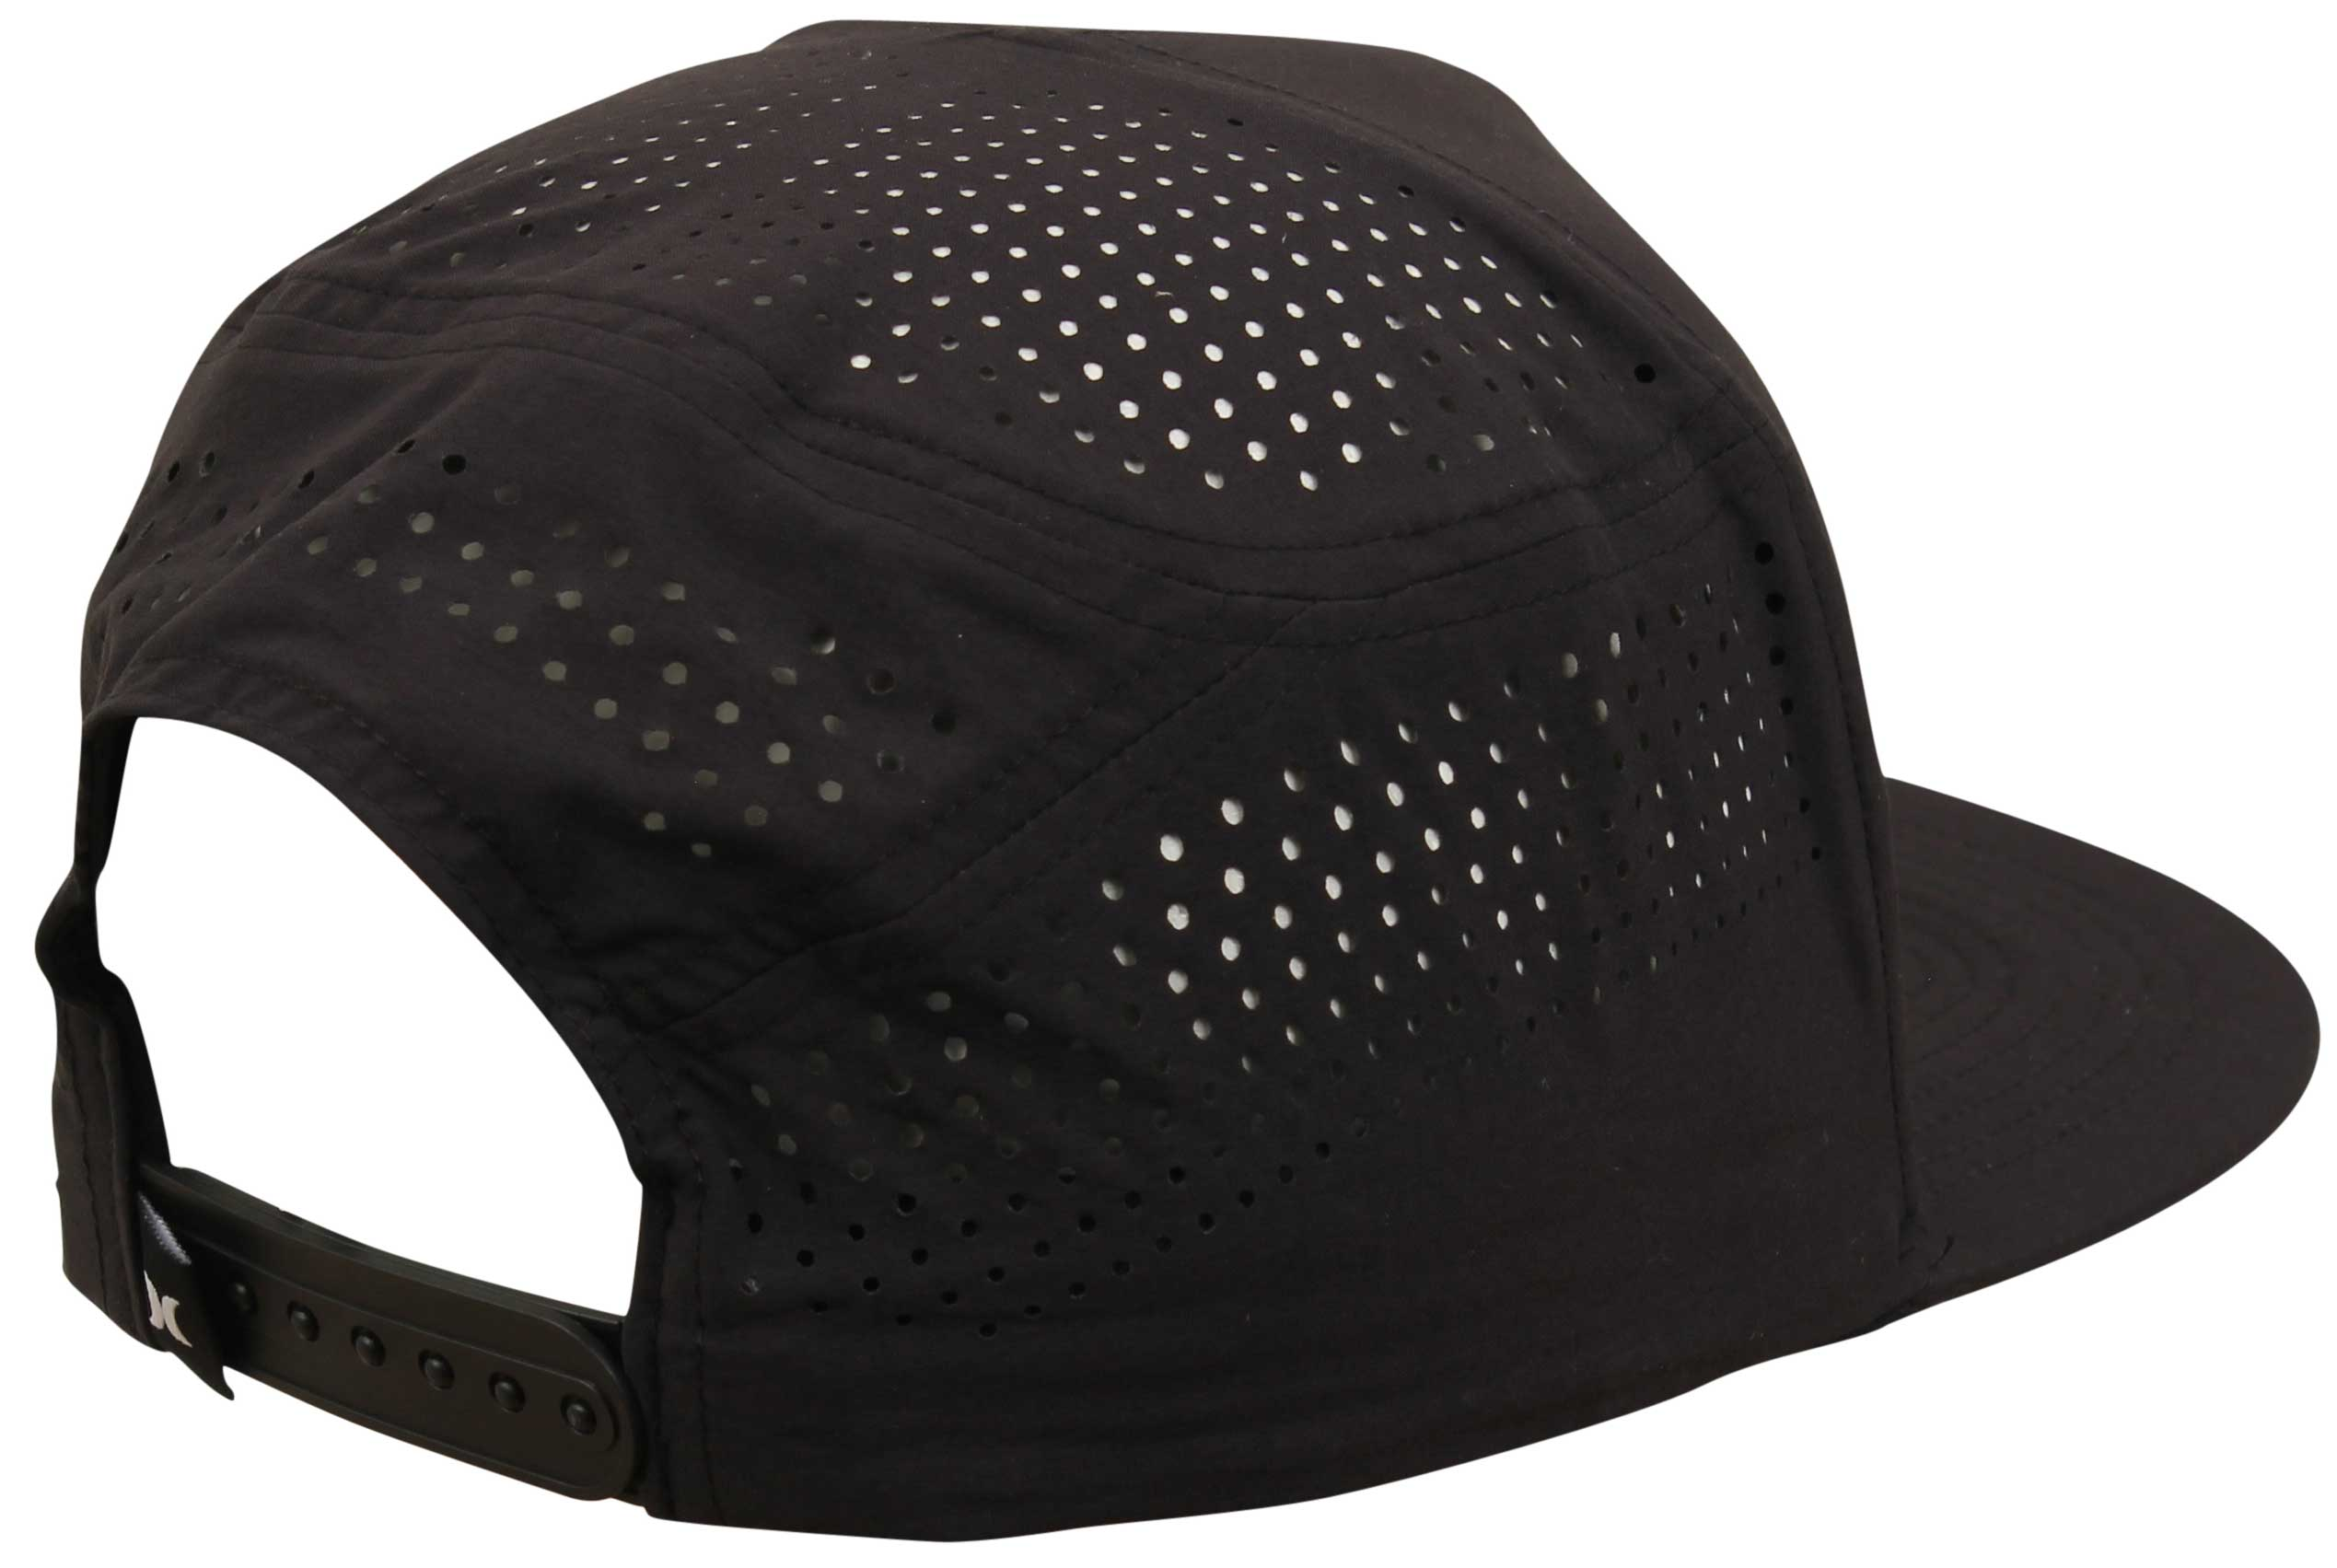 446be821c47 Hurley Phantom Flyer Hat - Black For Sale at Surfboards.com (1850632)